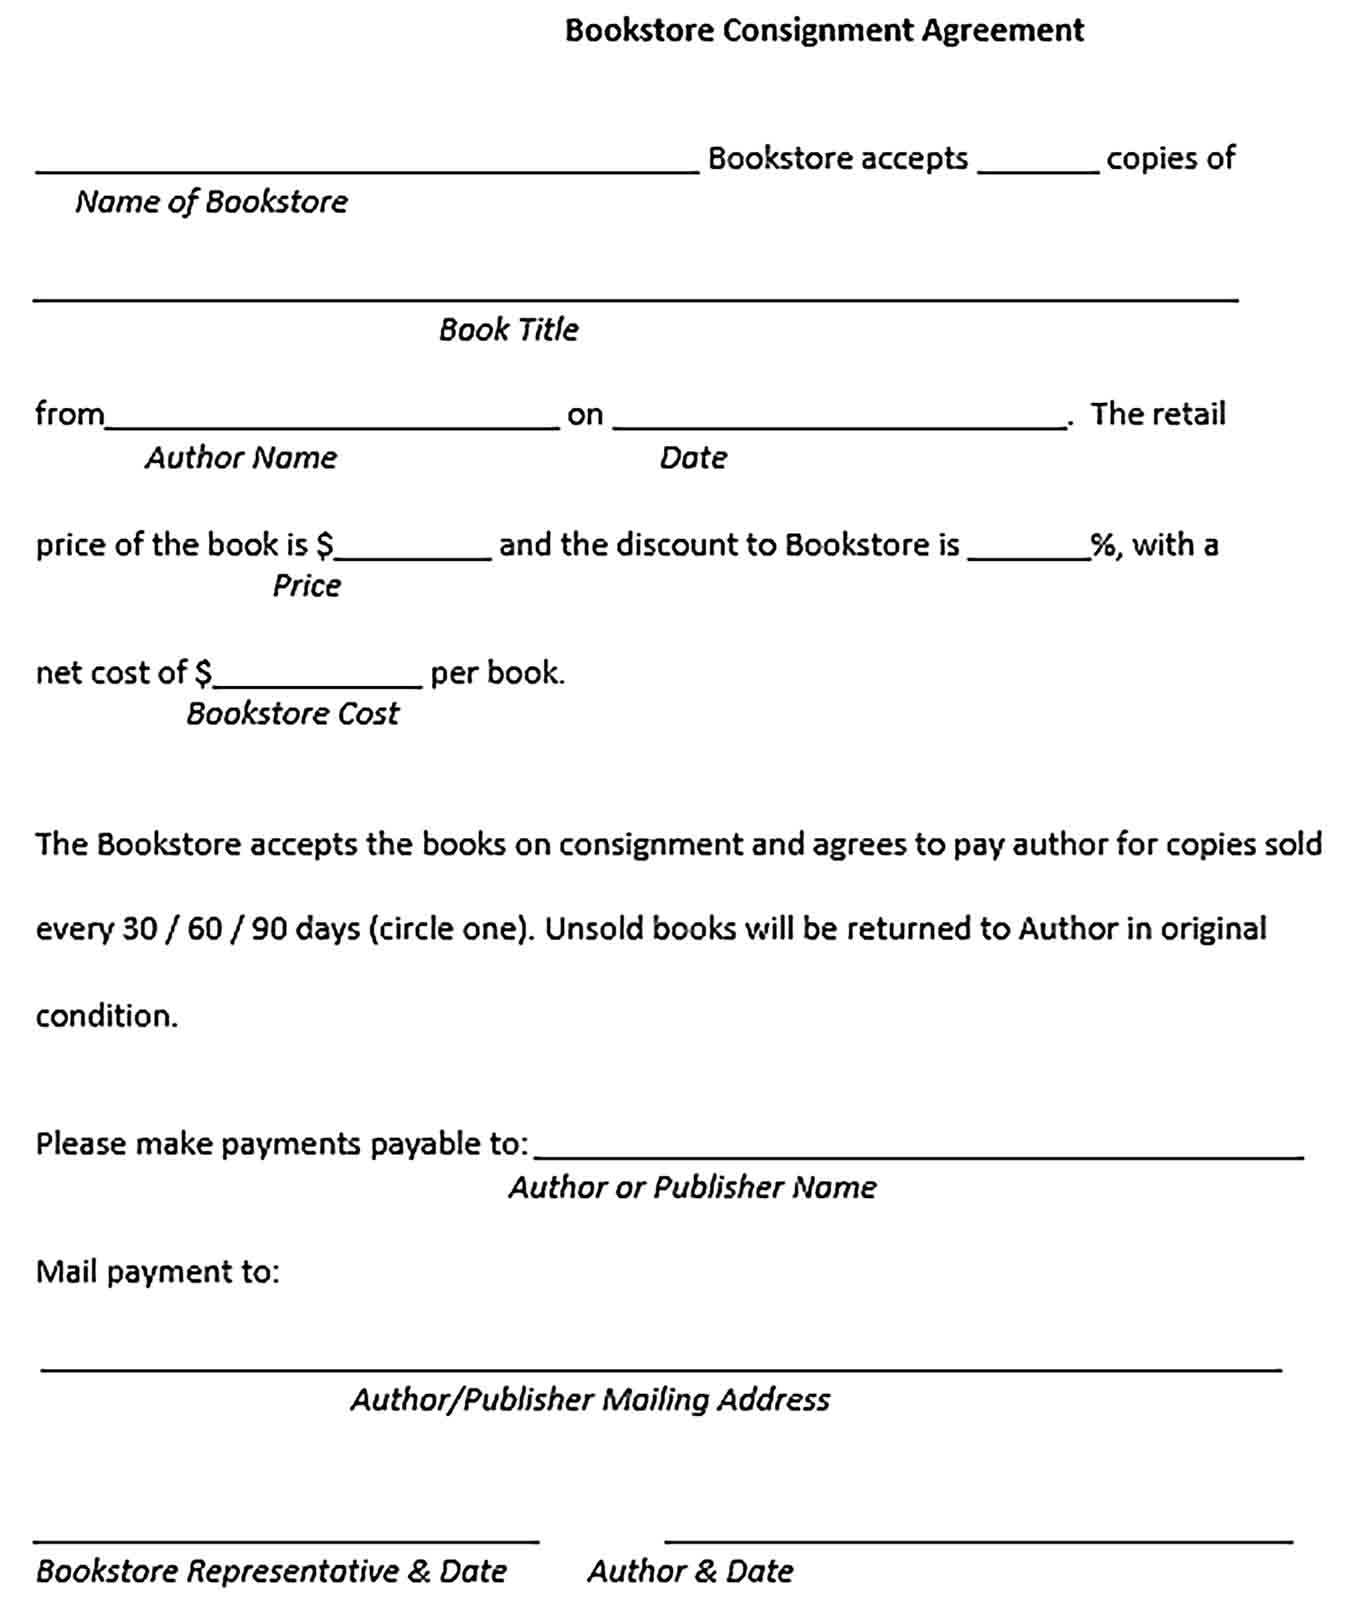 Sample Bookstore Consignment Agreement